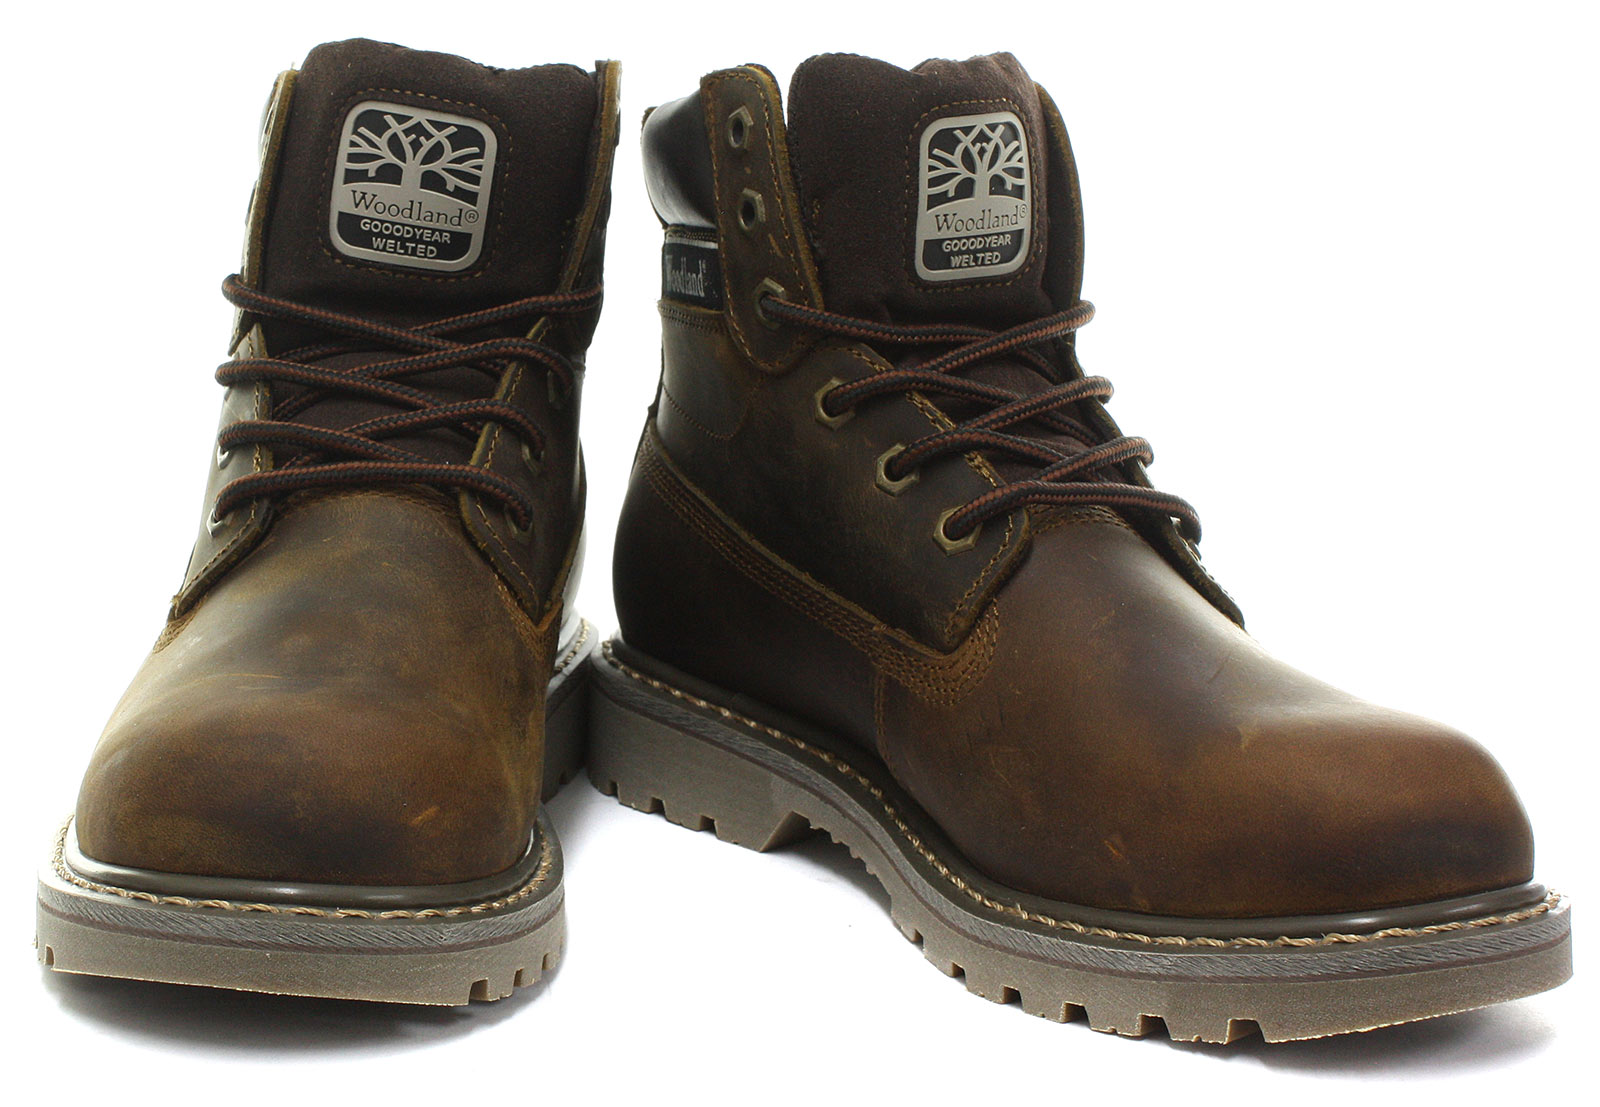 New-Woodland-M905-Mens-6-Eye-Utility-Boots-ALL-SIZES-AND-COLOURS miniature 12